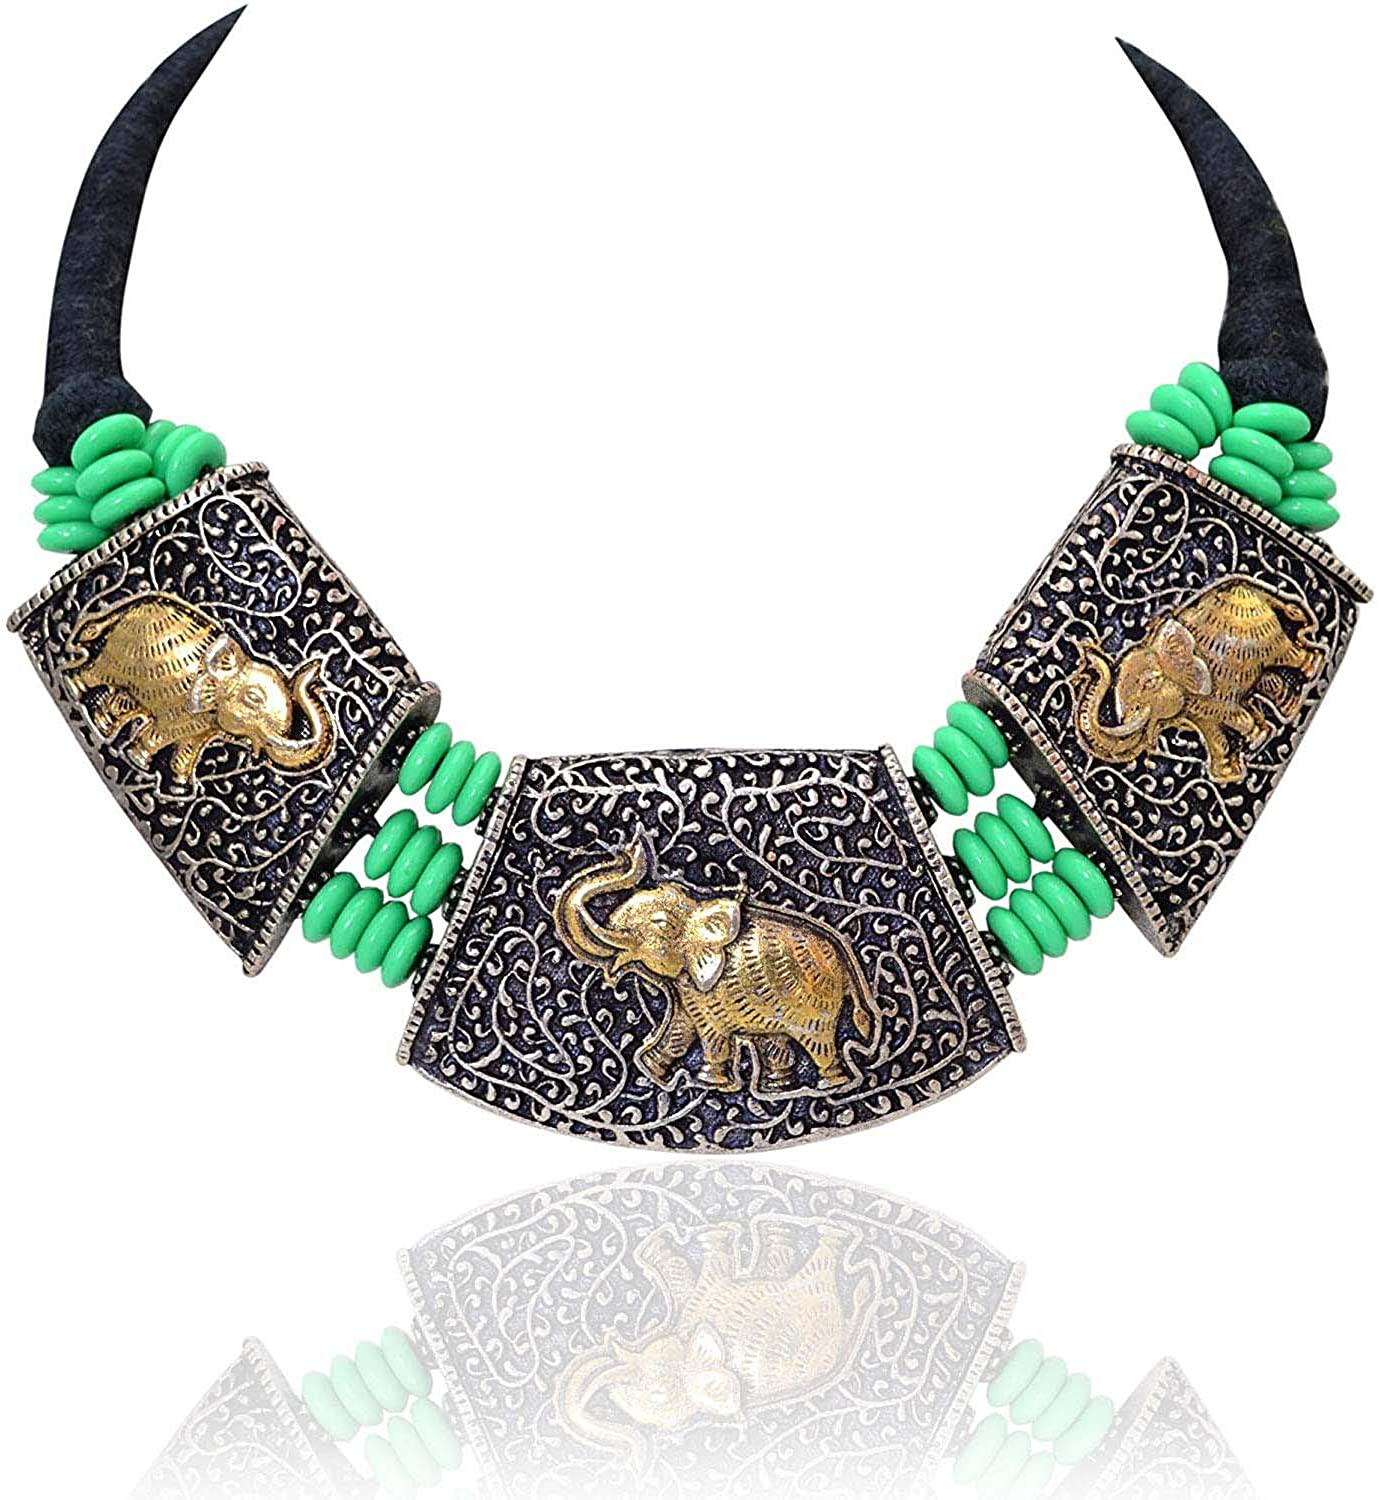 Sansar India Oxidized Dual Tone Thread Choker Green Beads Necklace for Girls and Women